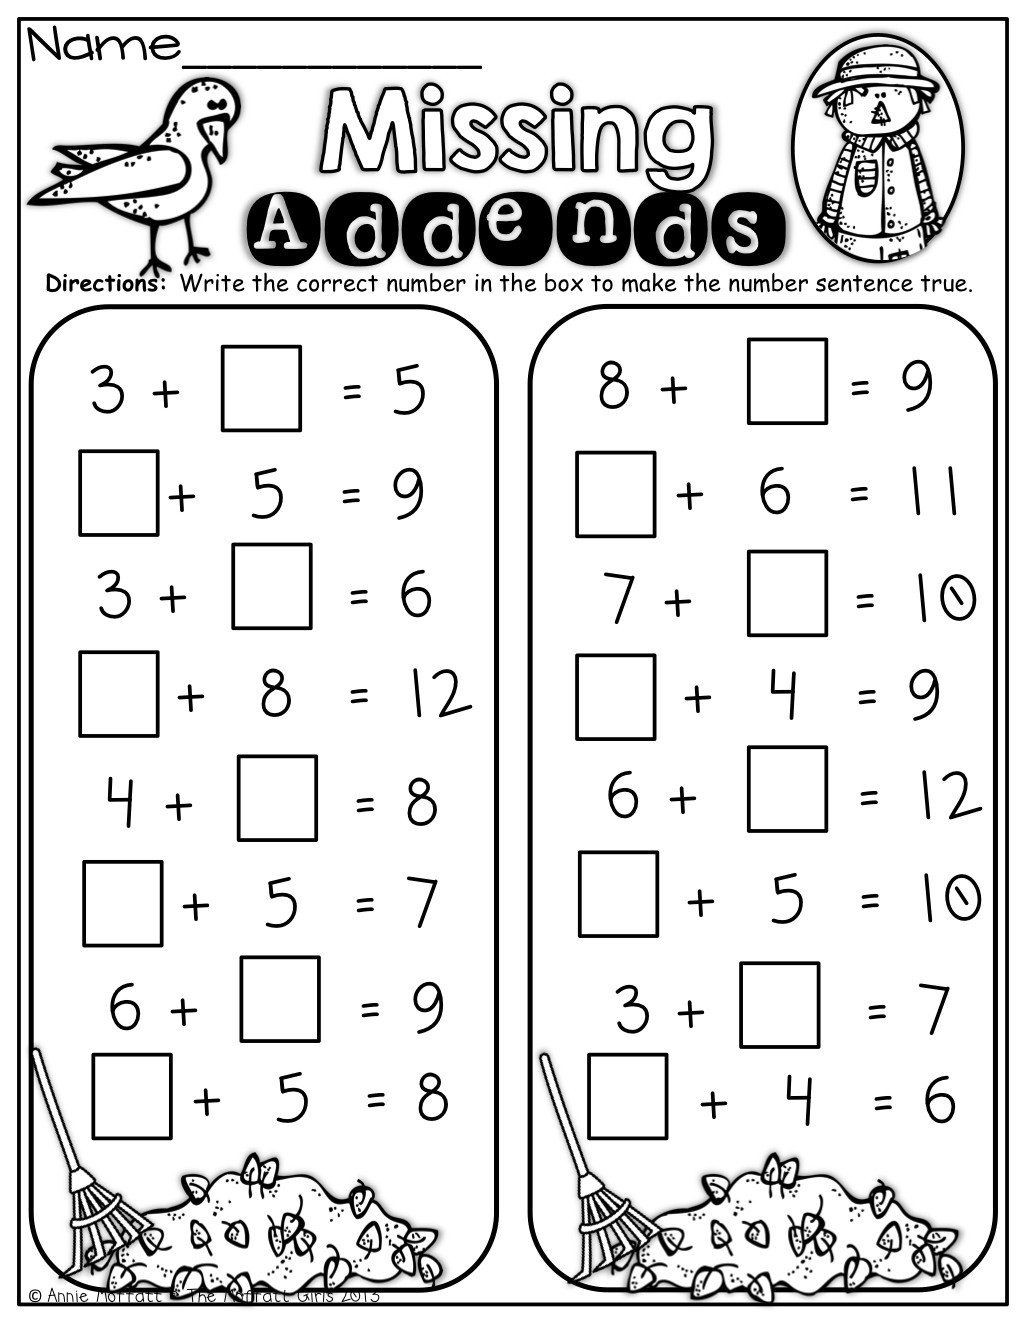 Missing Addend Worksheets First Grade Pin On Printable Worksheet for Kindergarten